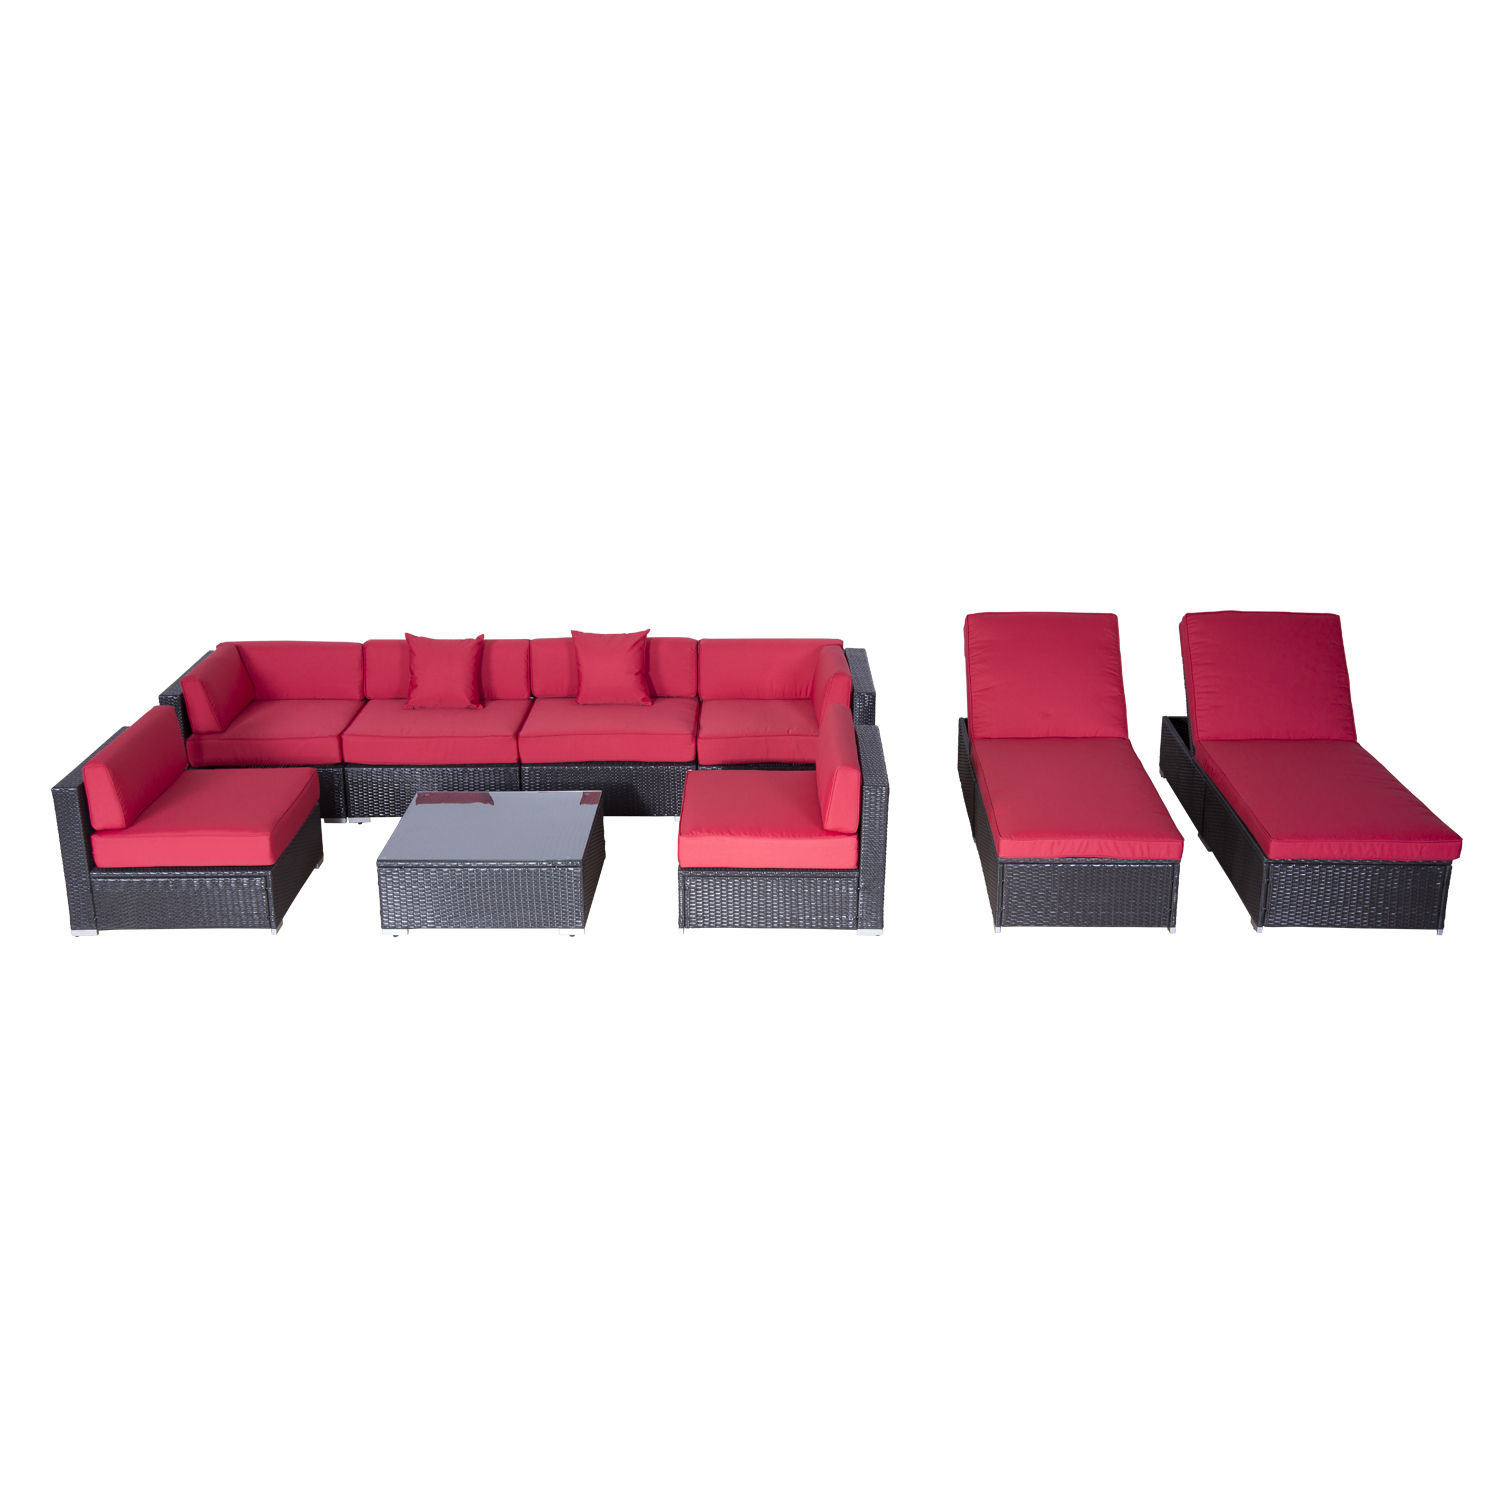 Outsunny Modern 9 Piece Outdoor Patio Rattan Wicker Sofa Sectional U0026 Chaise  Lounge Furniture Set   Crimson   Black Friday 15%   Black Friday